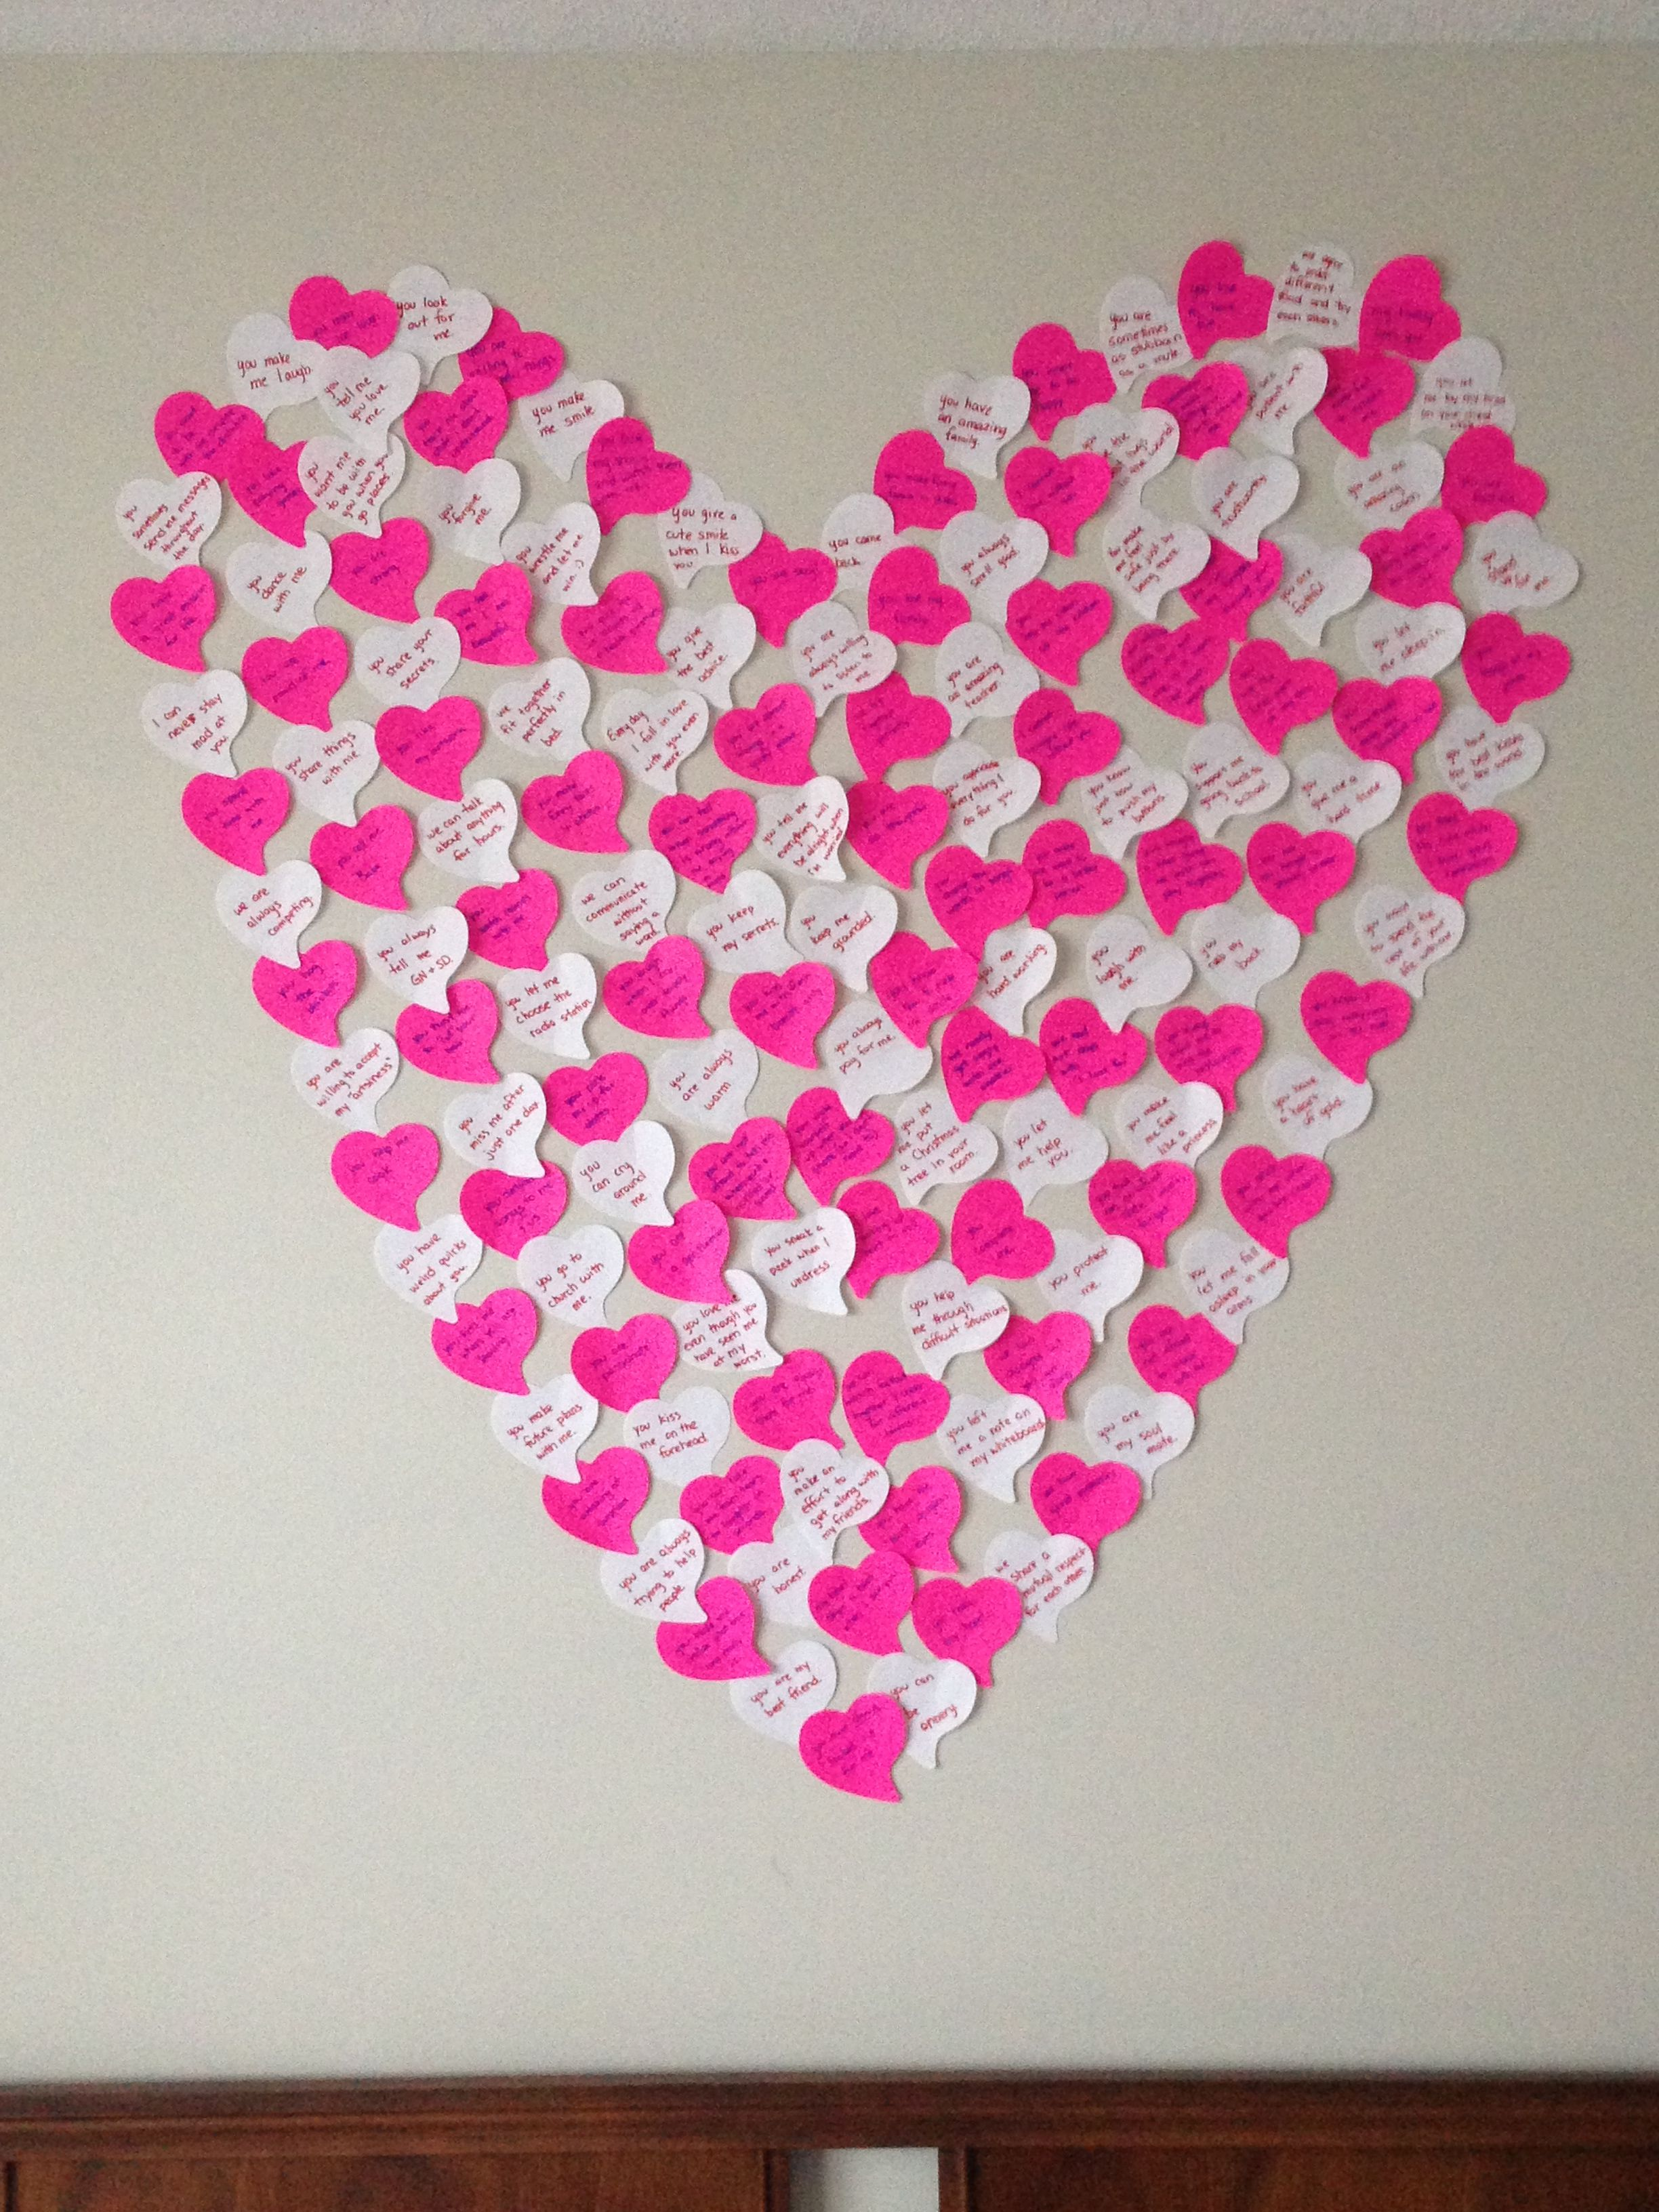 150 reasons I love my boyfriend. Used heart shaped stickies. I ...